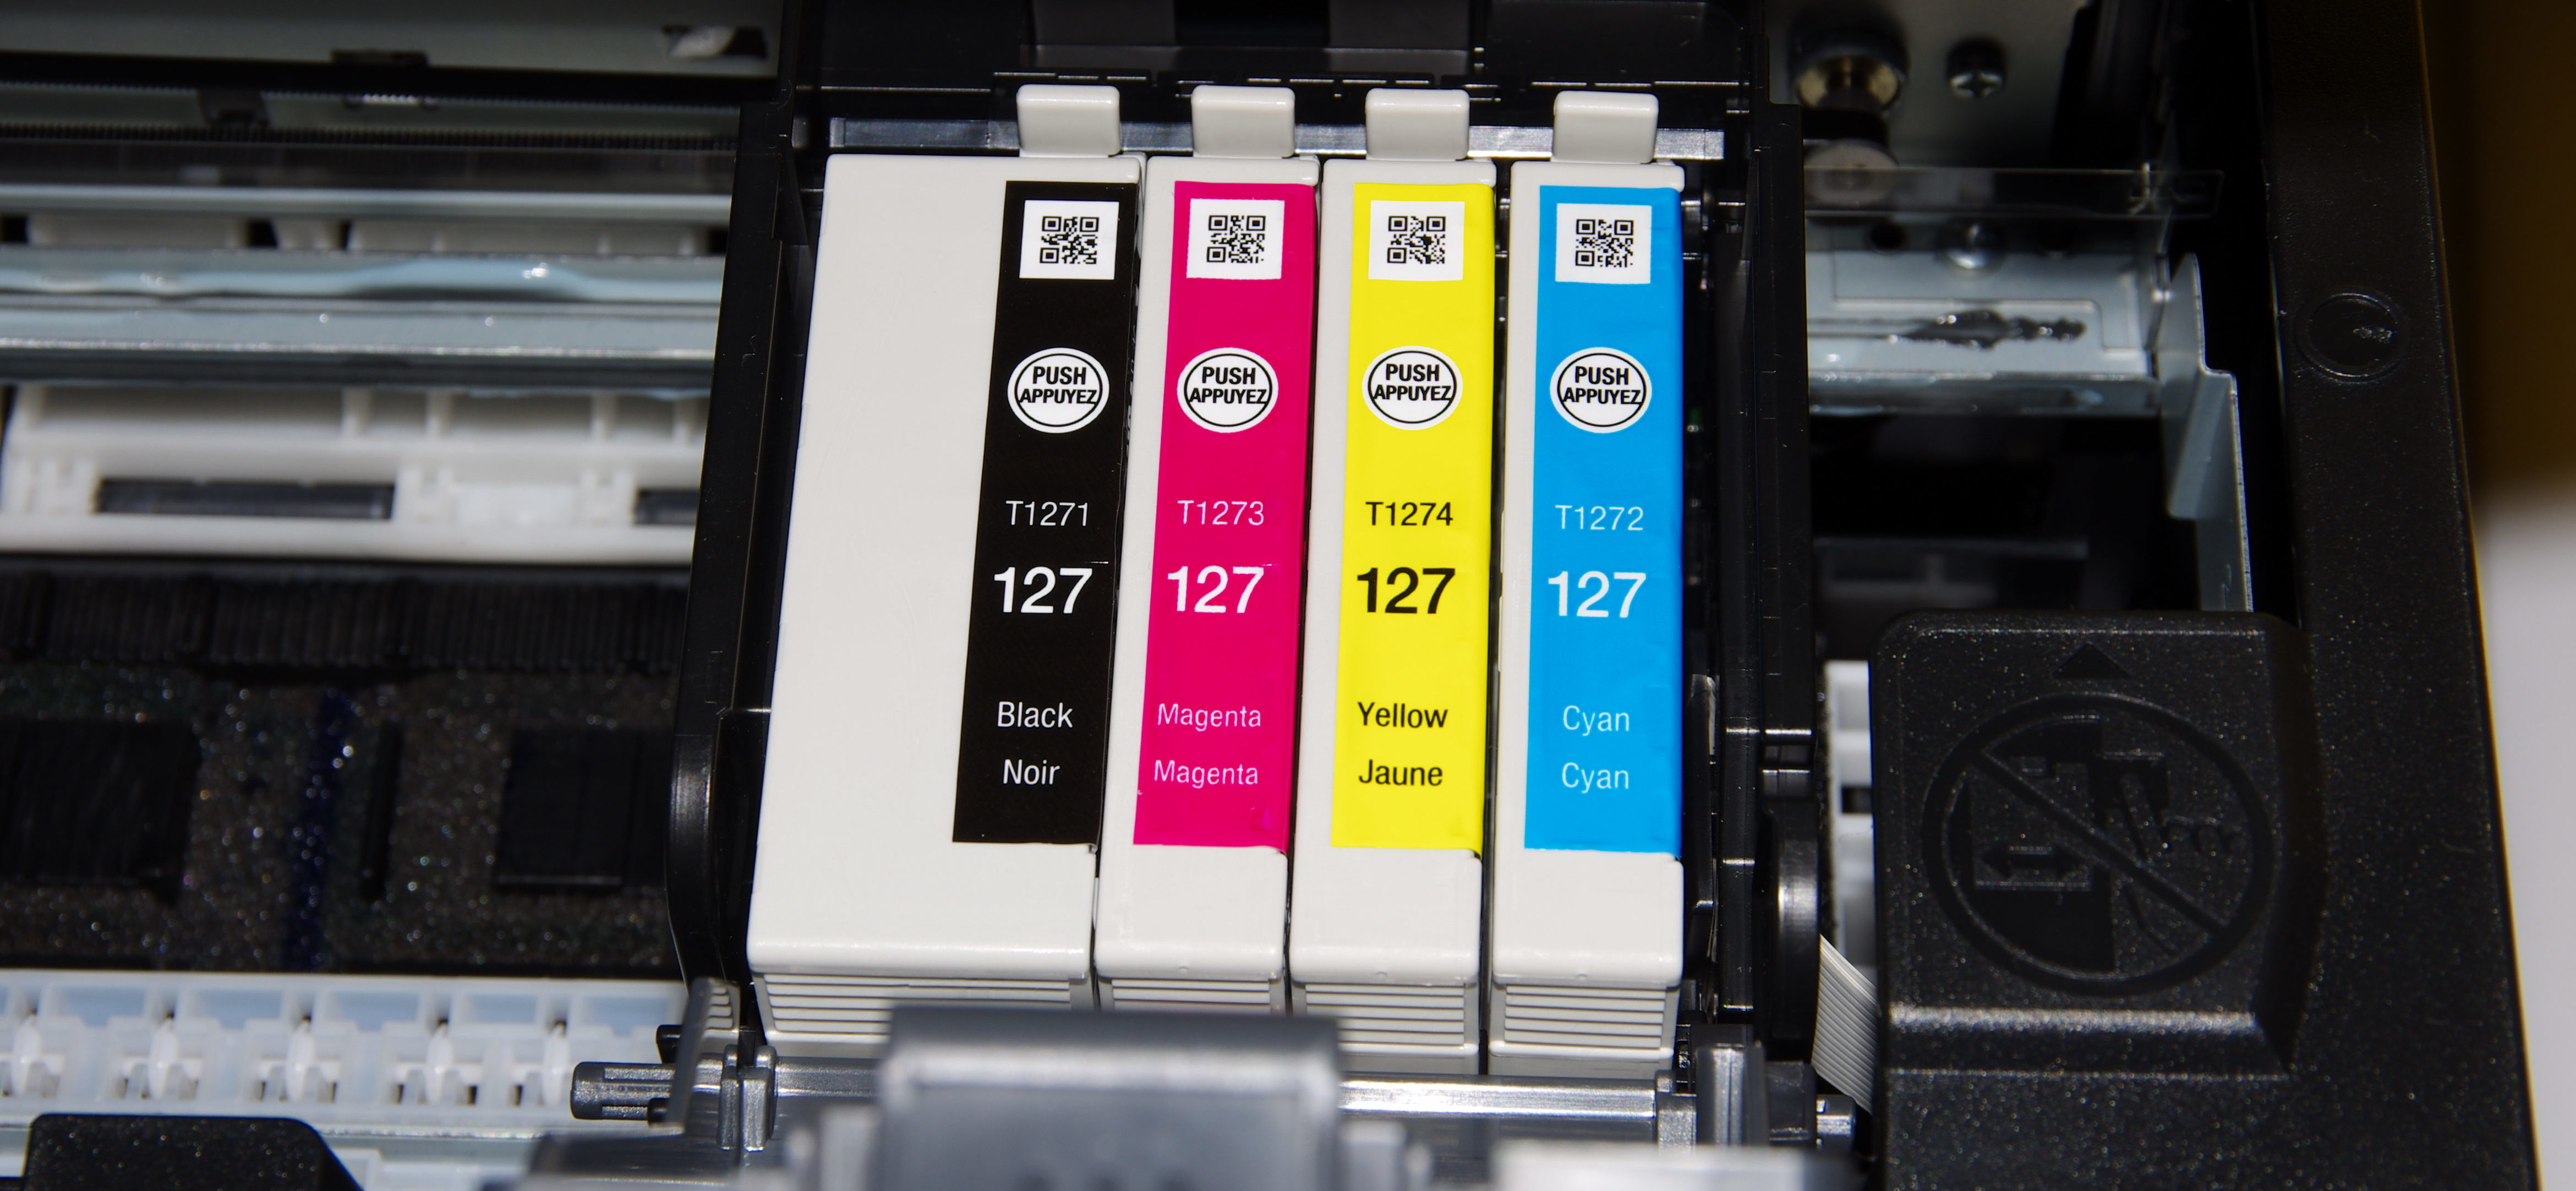 Buy Inkjet Printer Toner Cartridge There Is No Good Reason To Ever Buy An Inkjet Printer Just Well